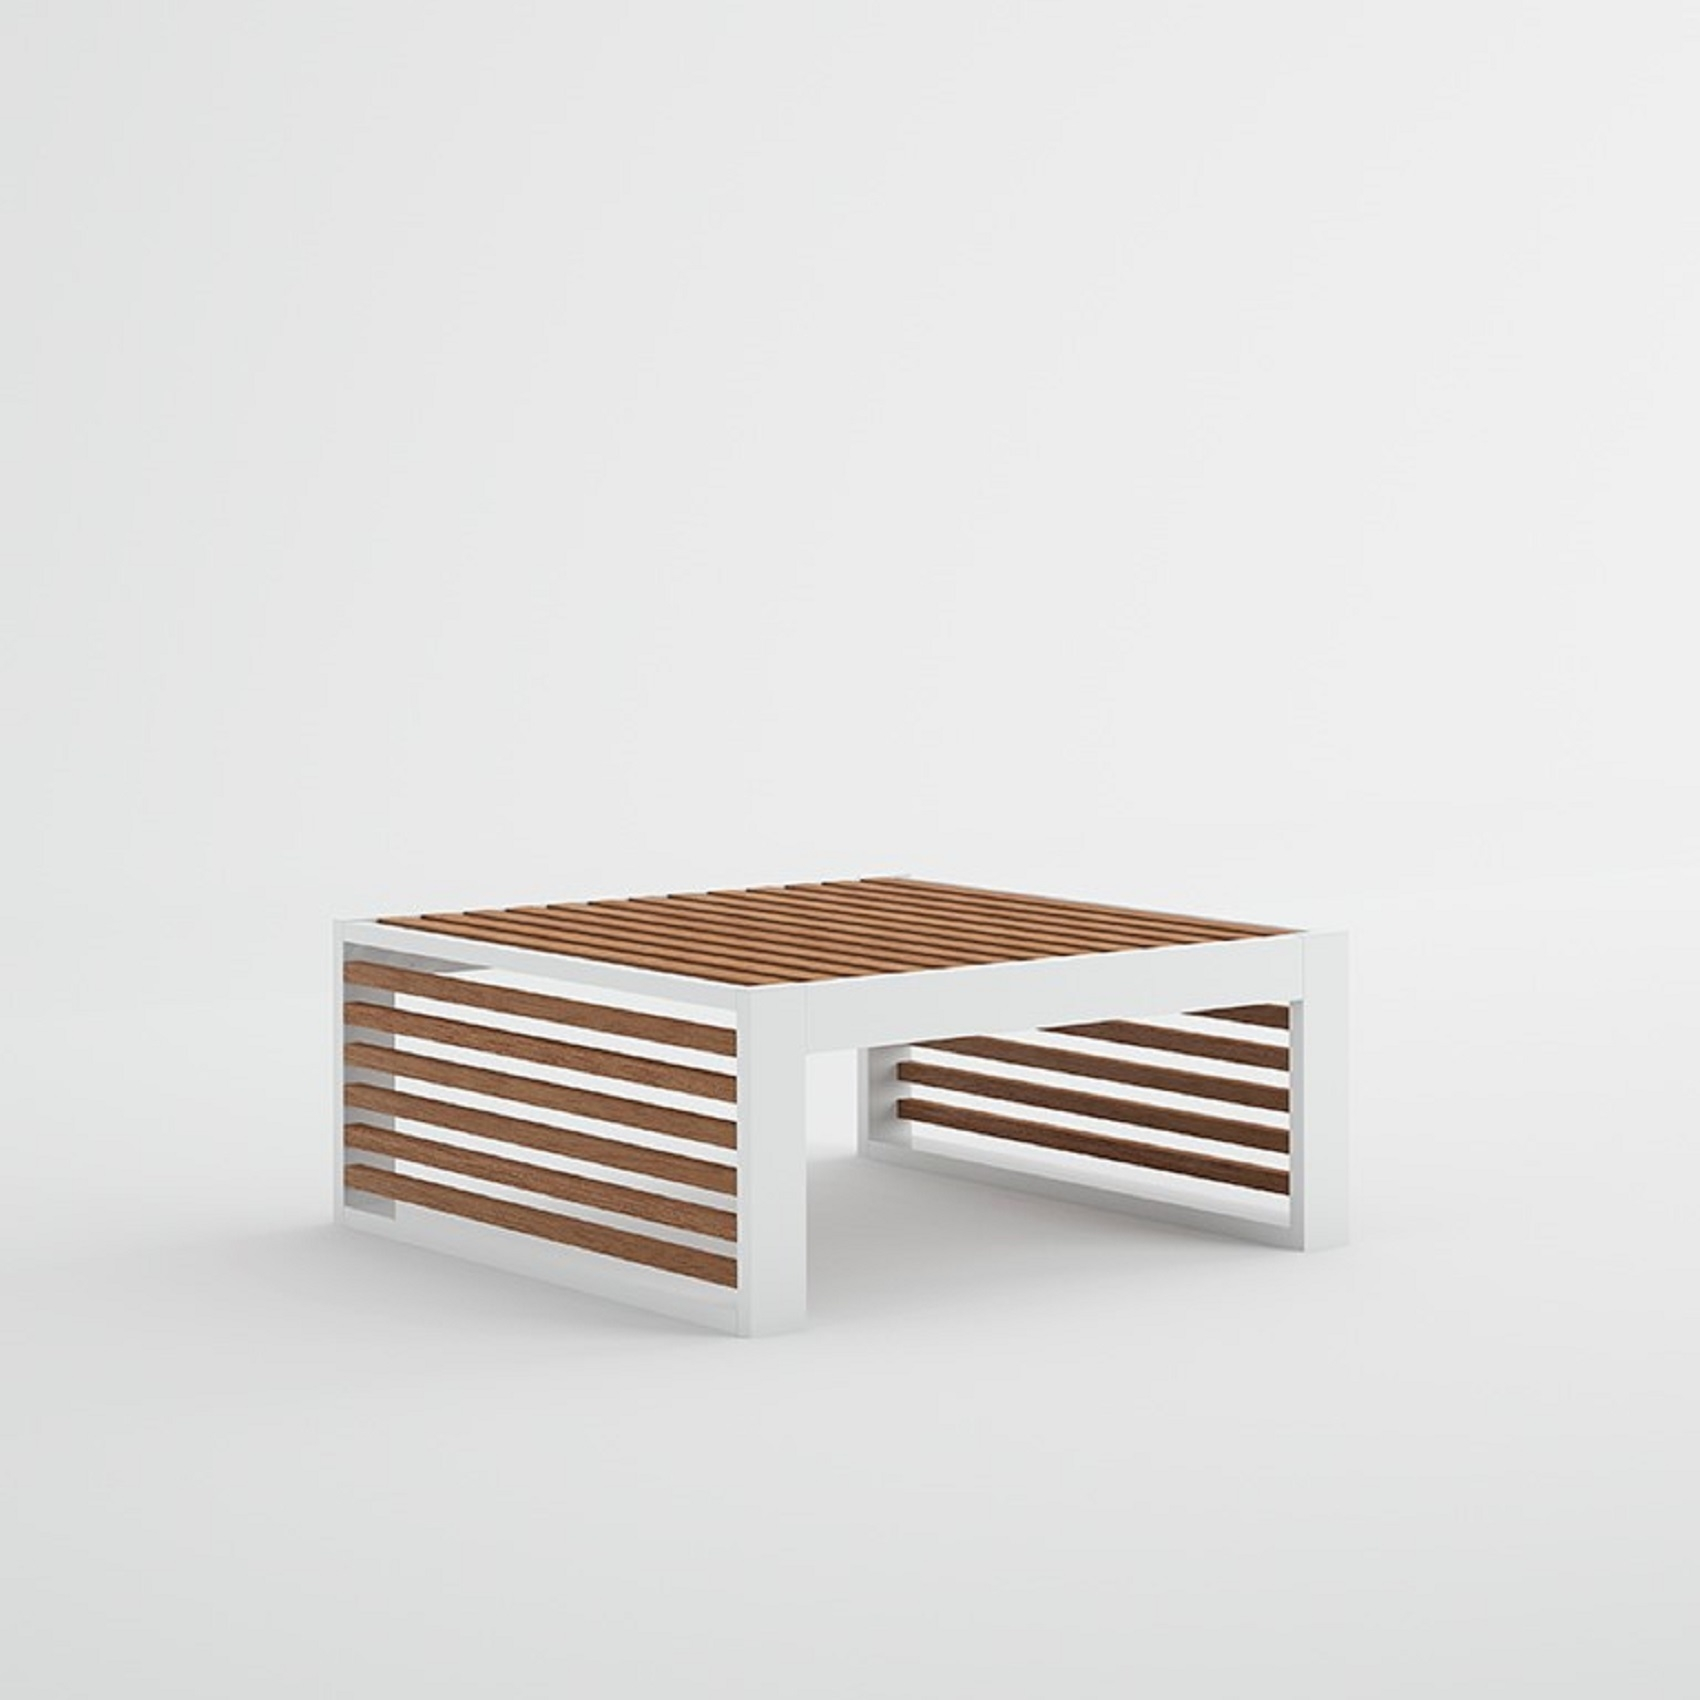 gandia blasco dna teak chaiselongue